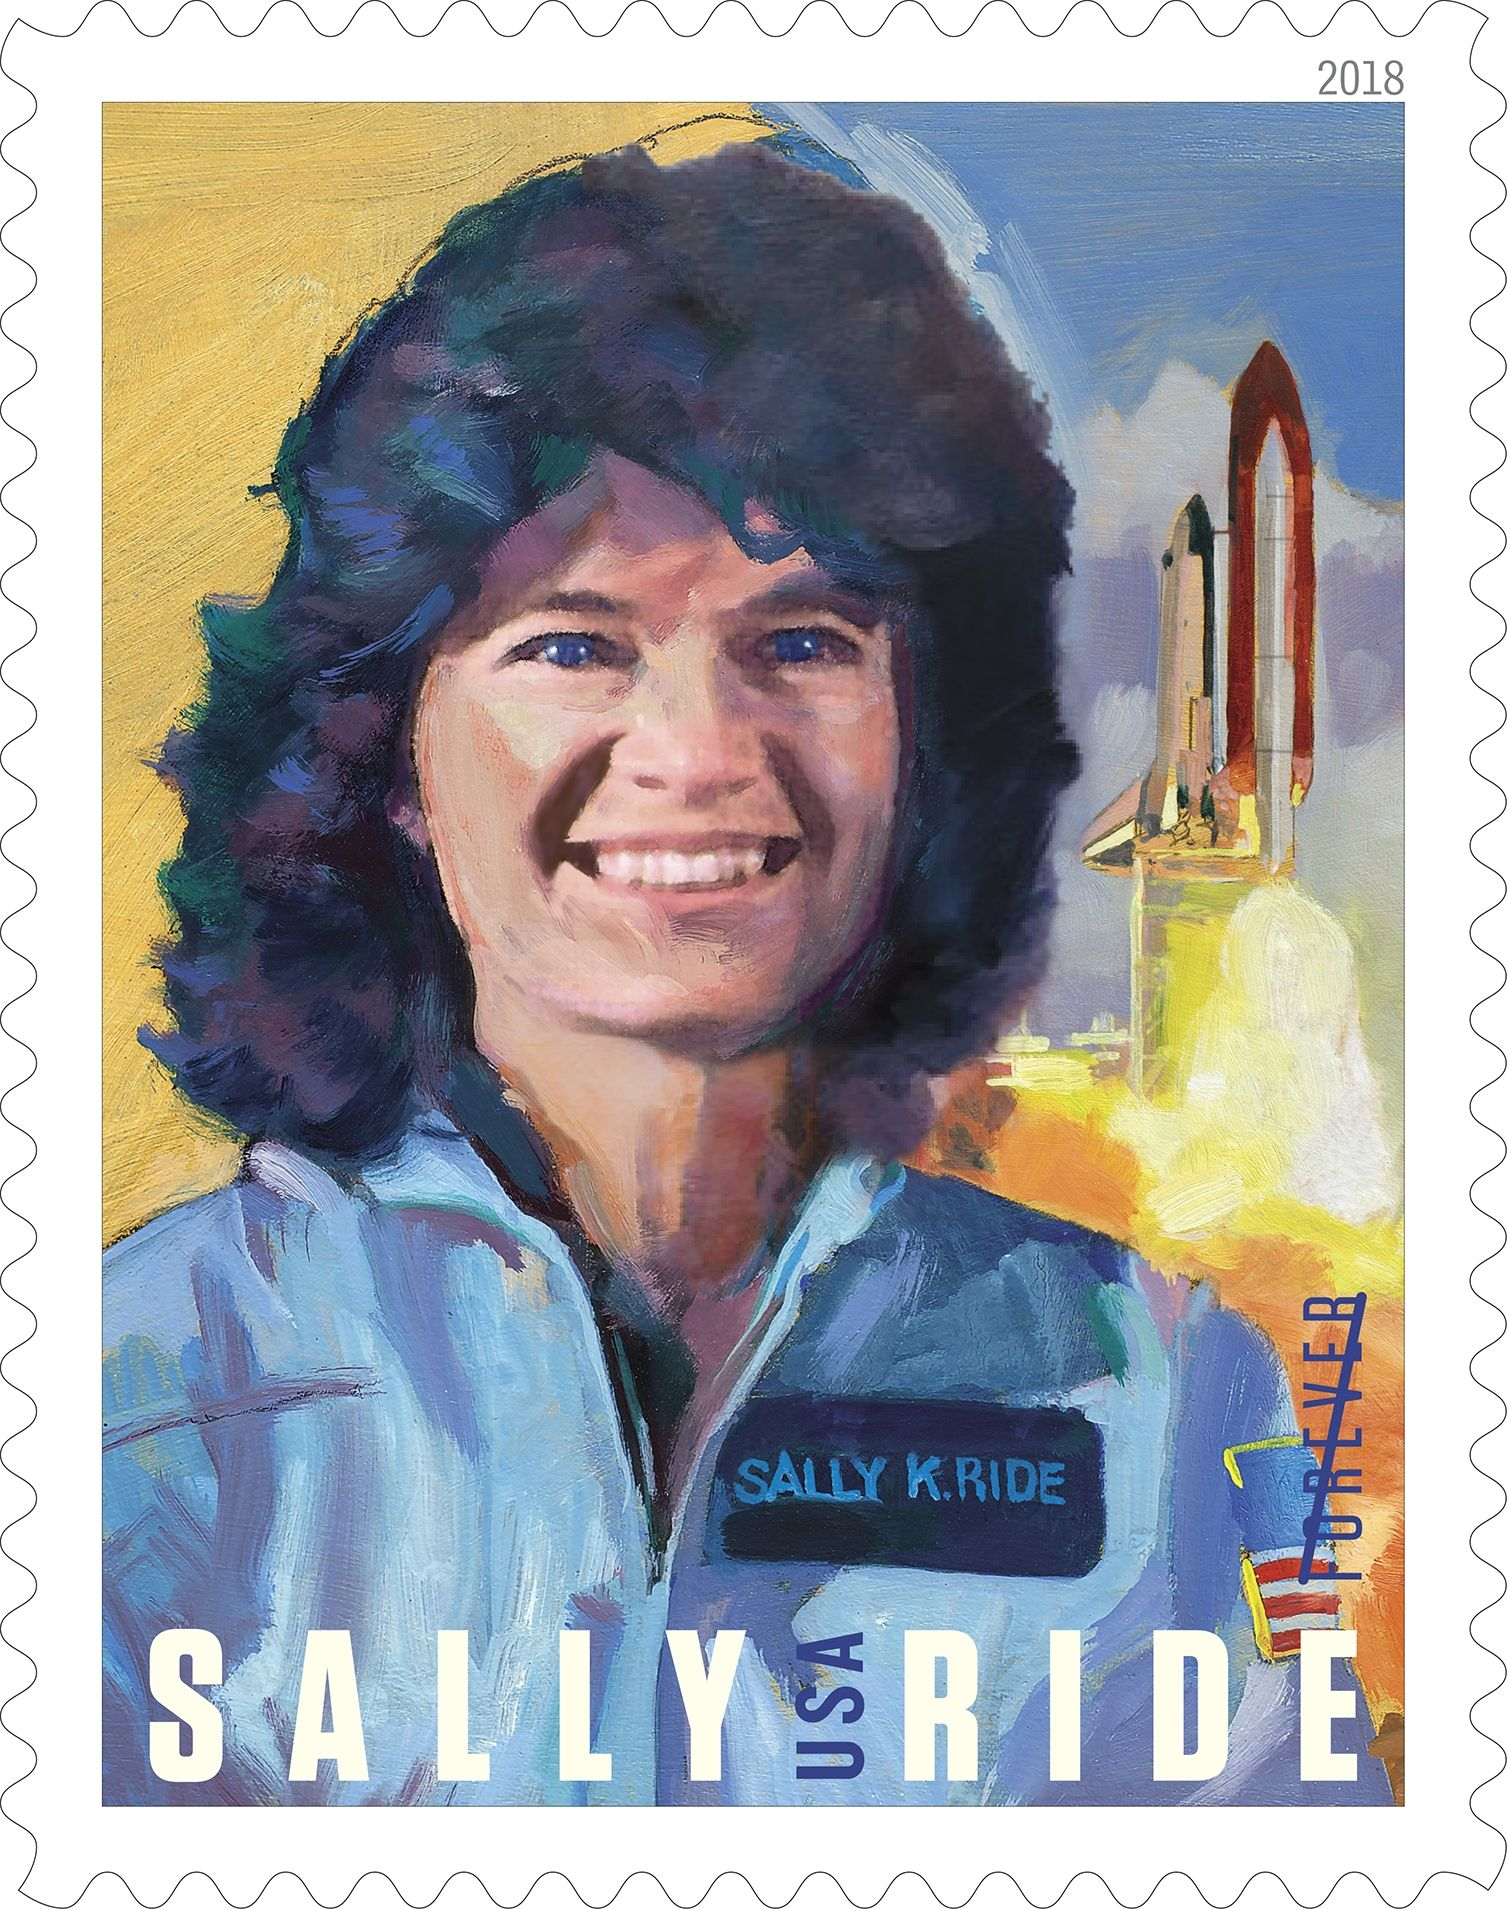 05_25_Sally_Ride_stamp